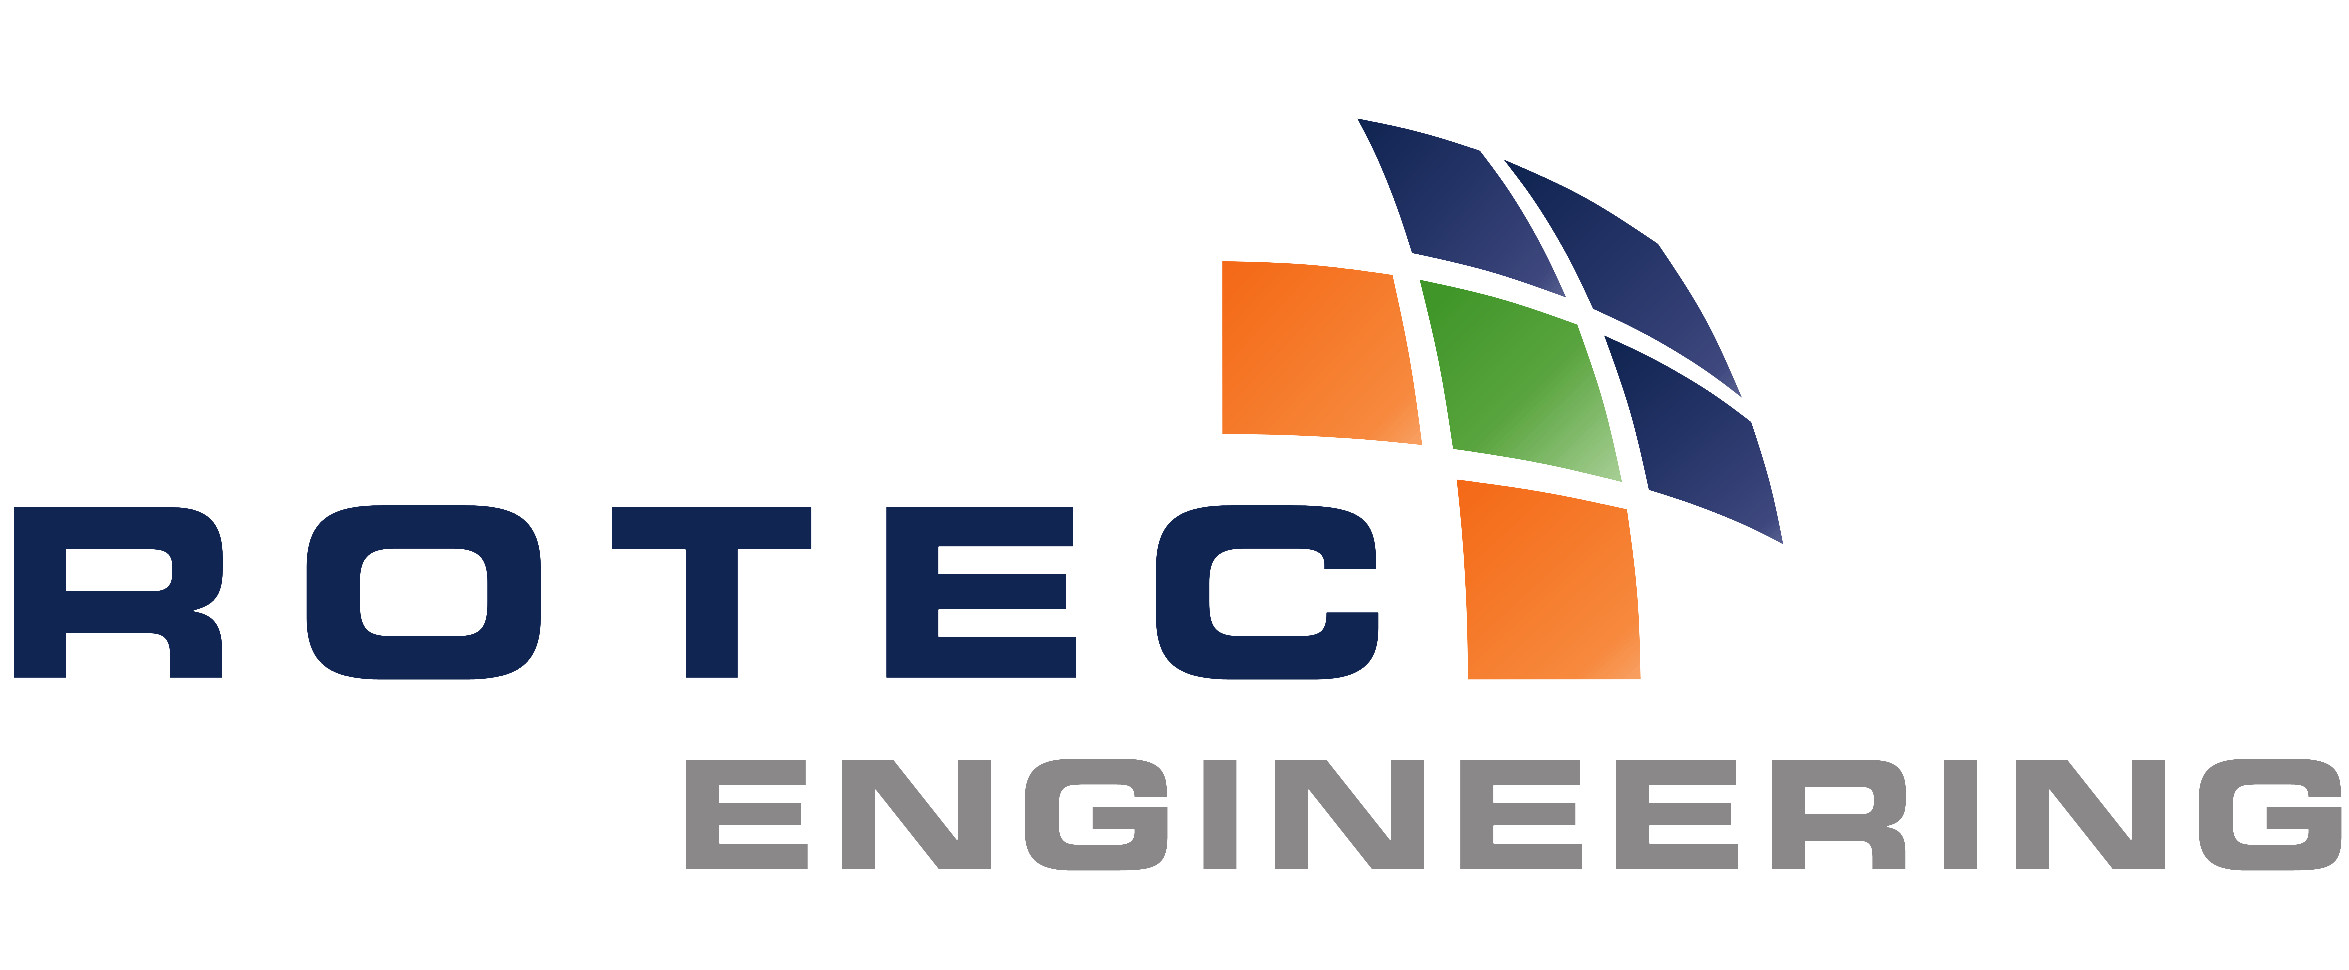 Rotec engineering big logo